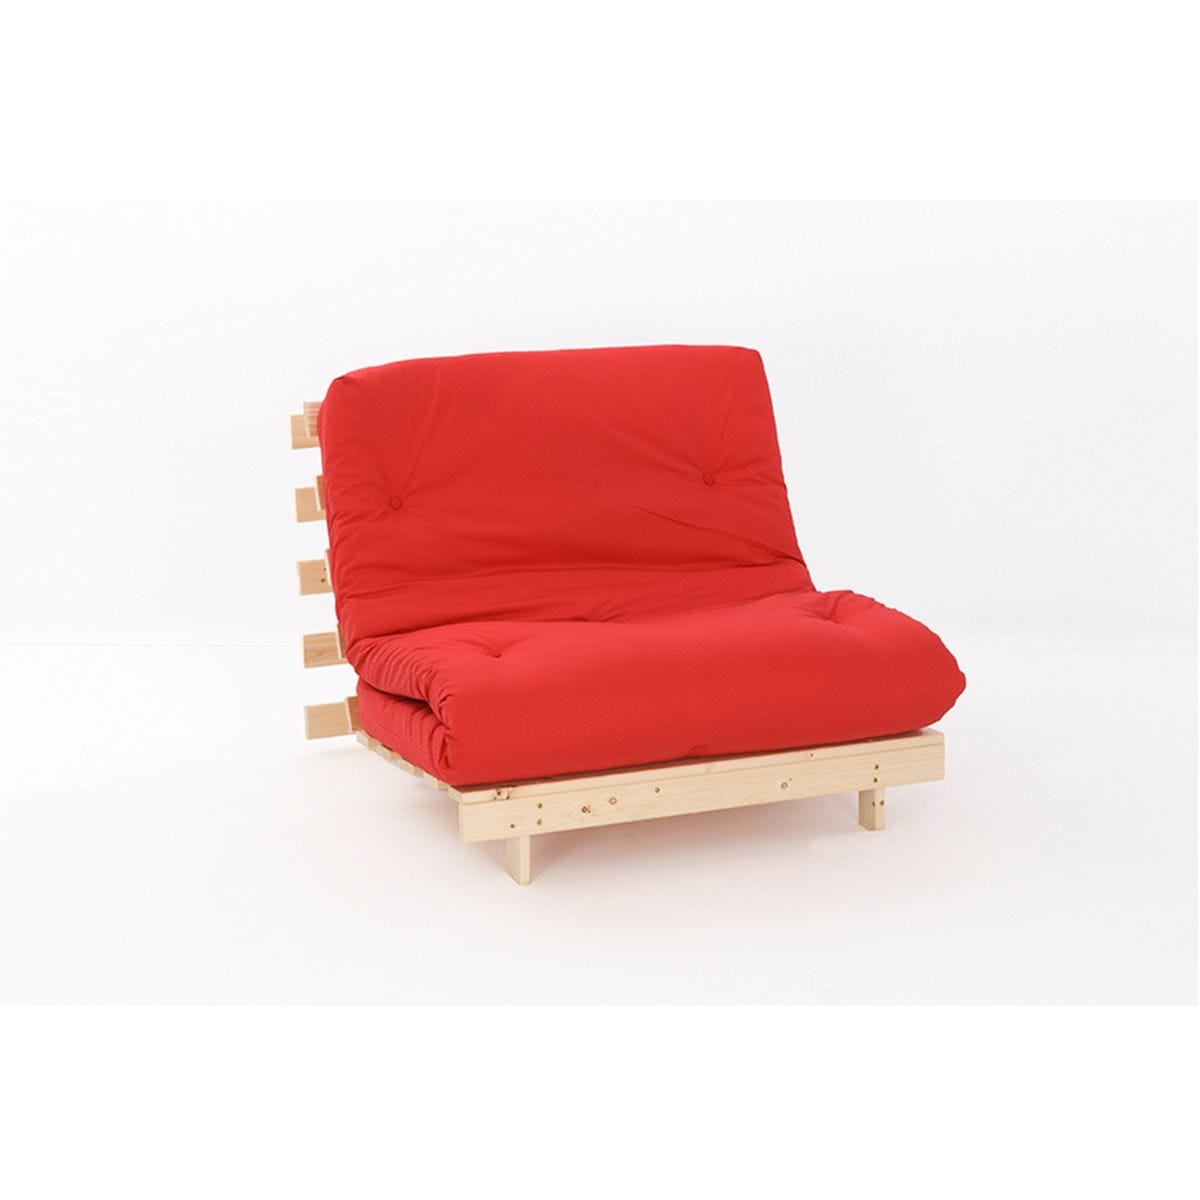 Ayr Futon Set With Tufted Mattress - Red